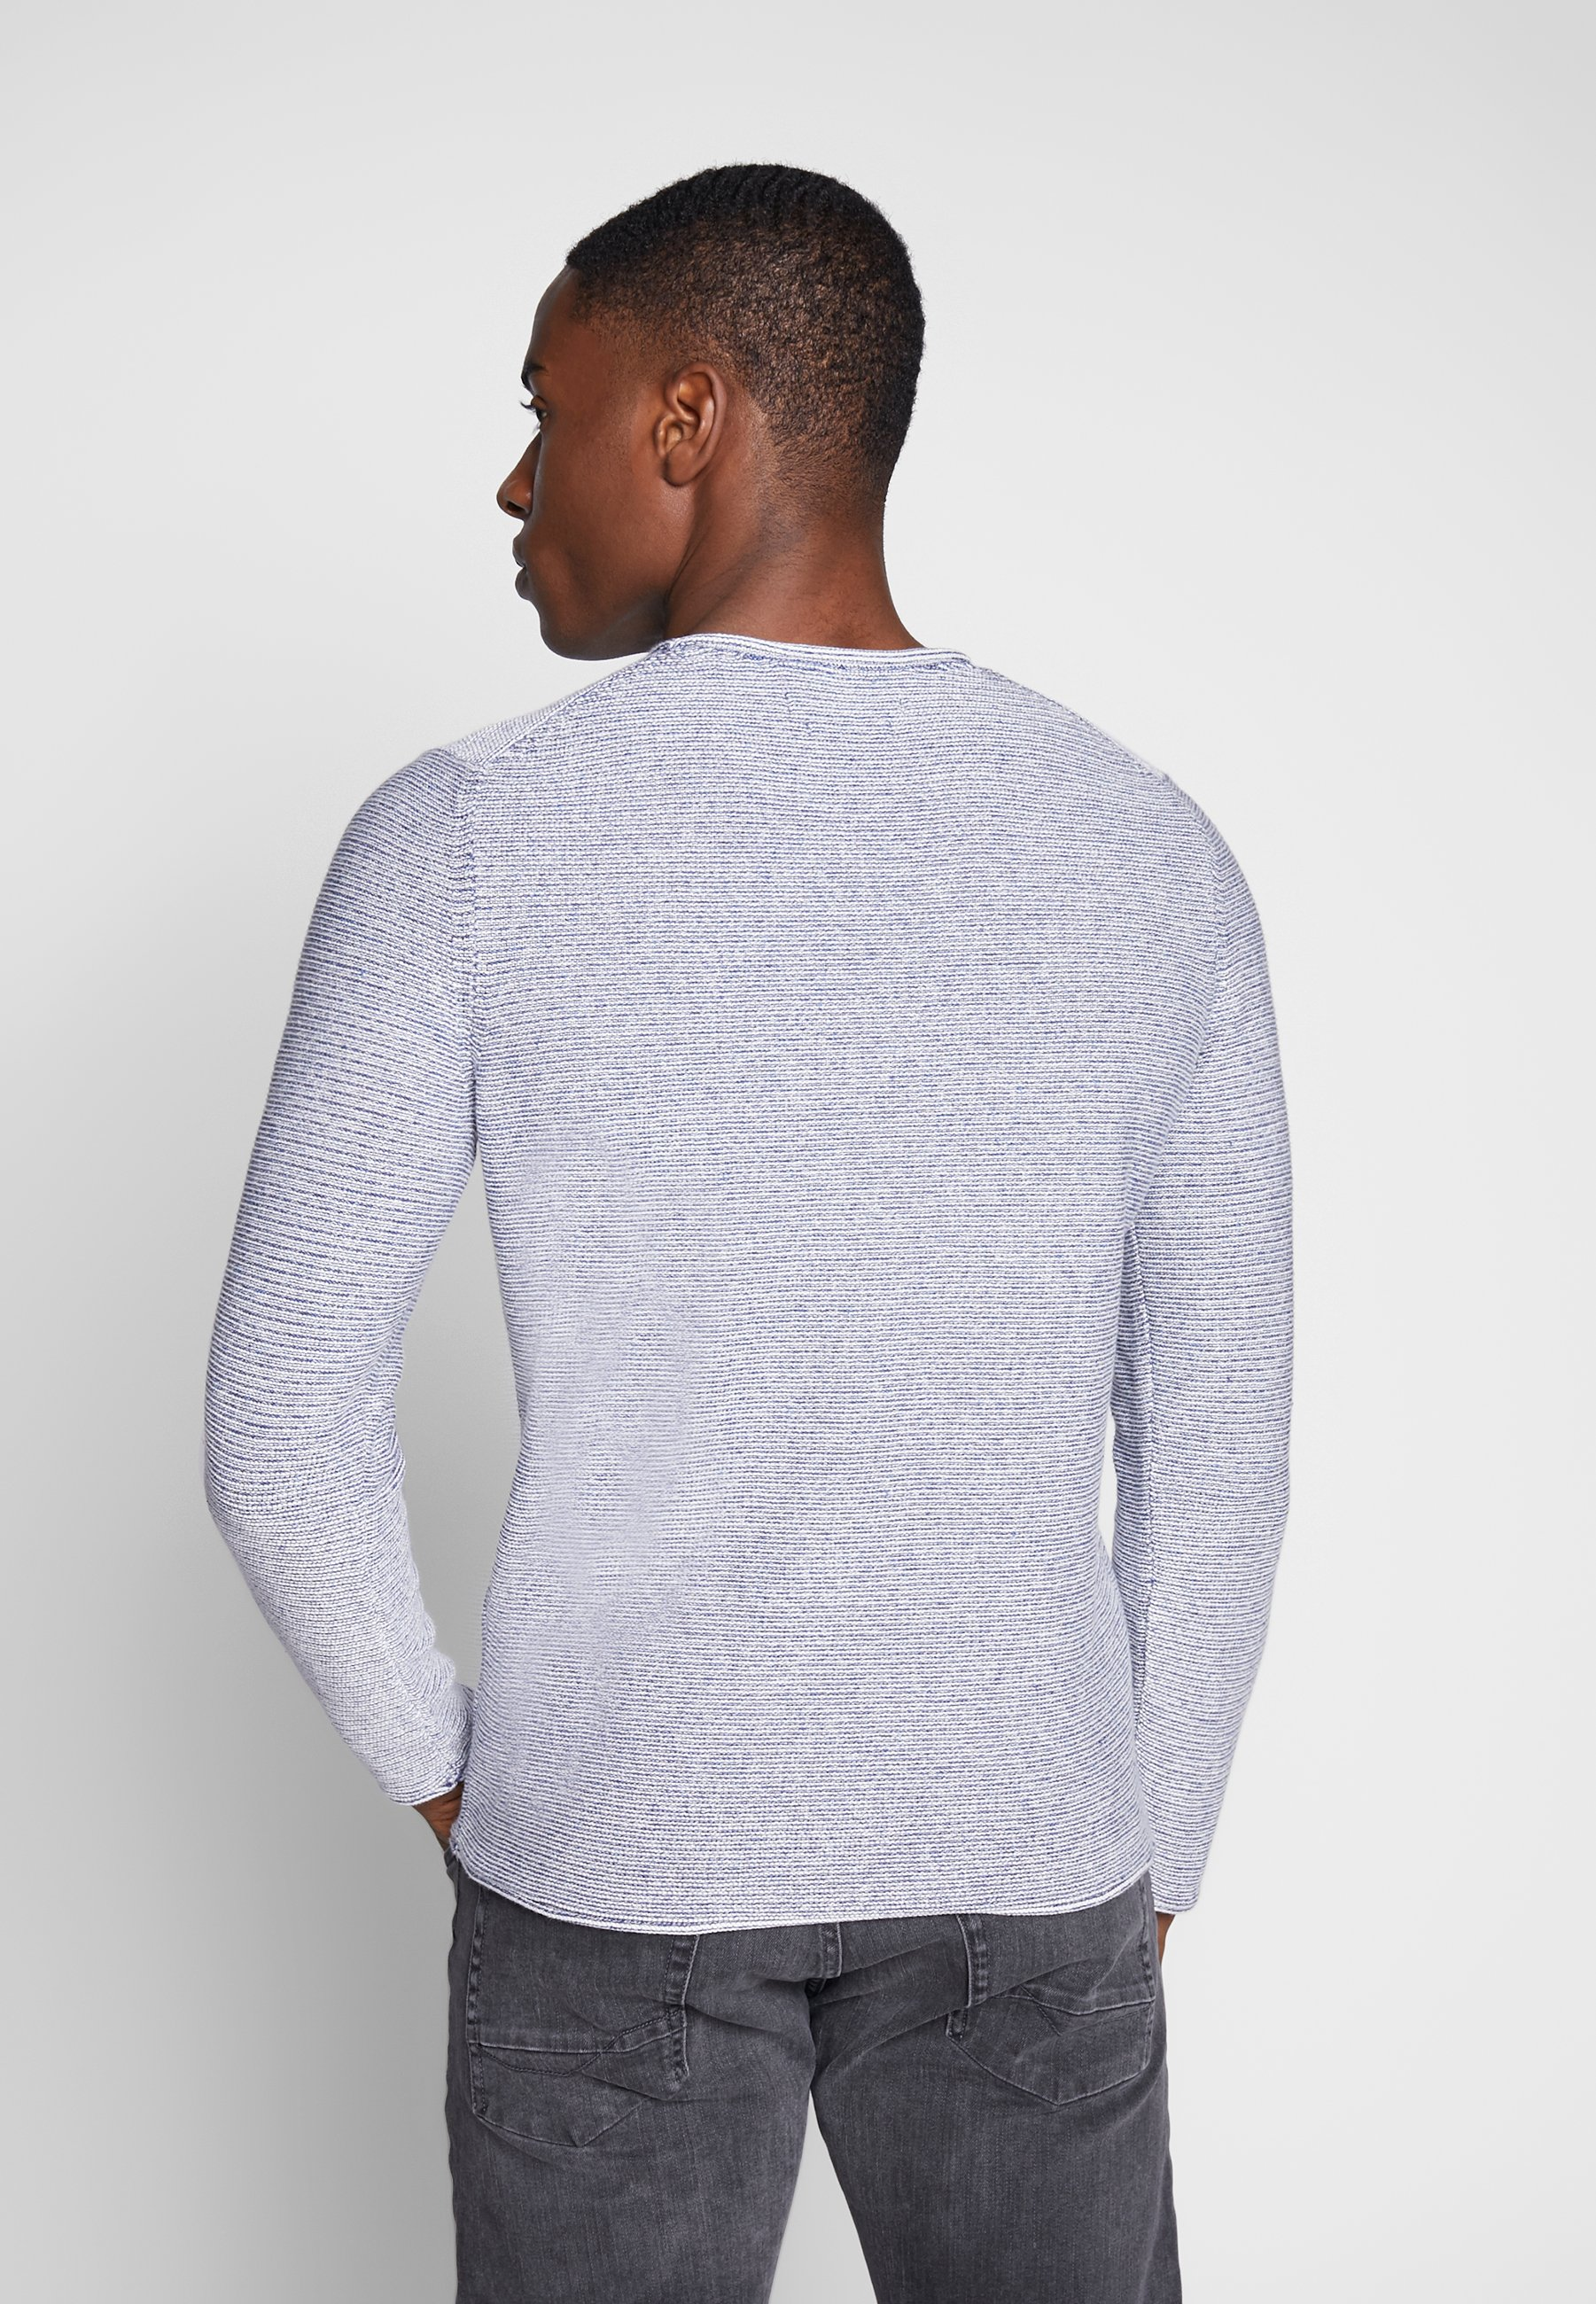 Marc O'Polo PULLOVER, CREW NECK - Pullover - multi/total eclipse